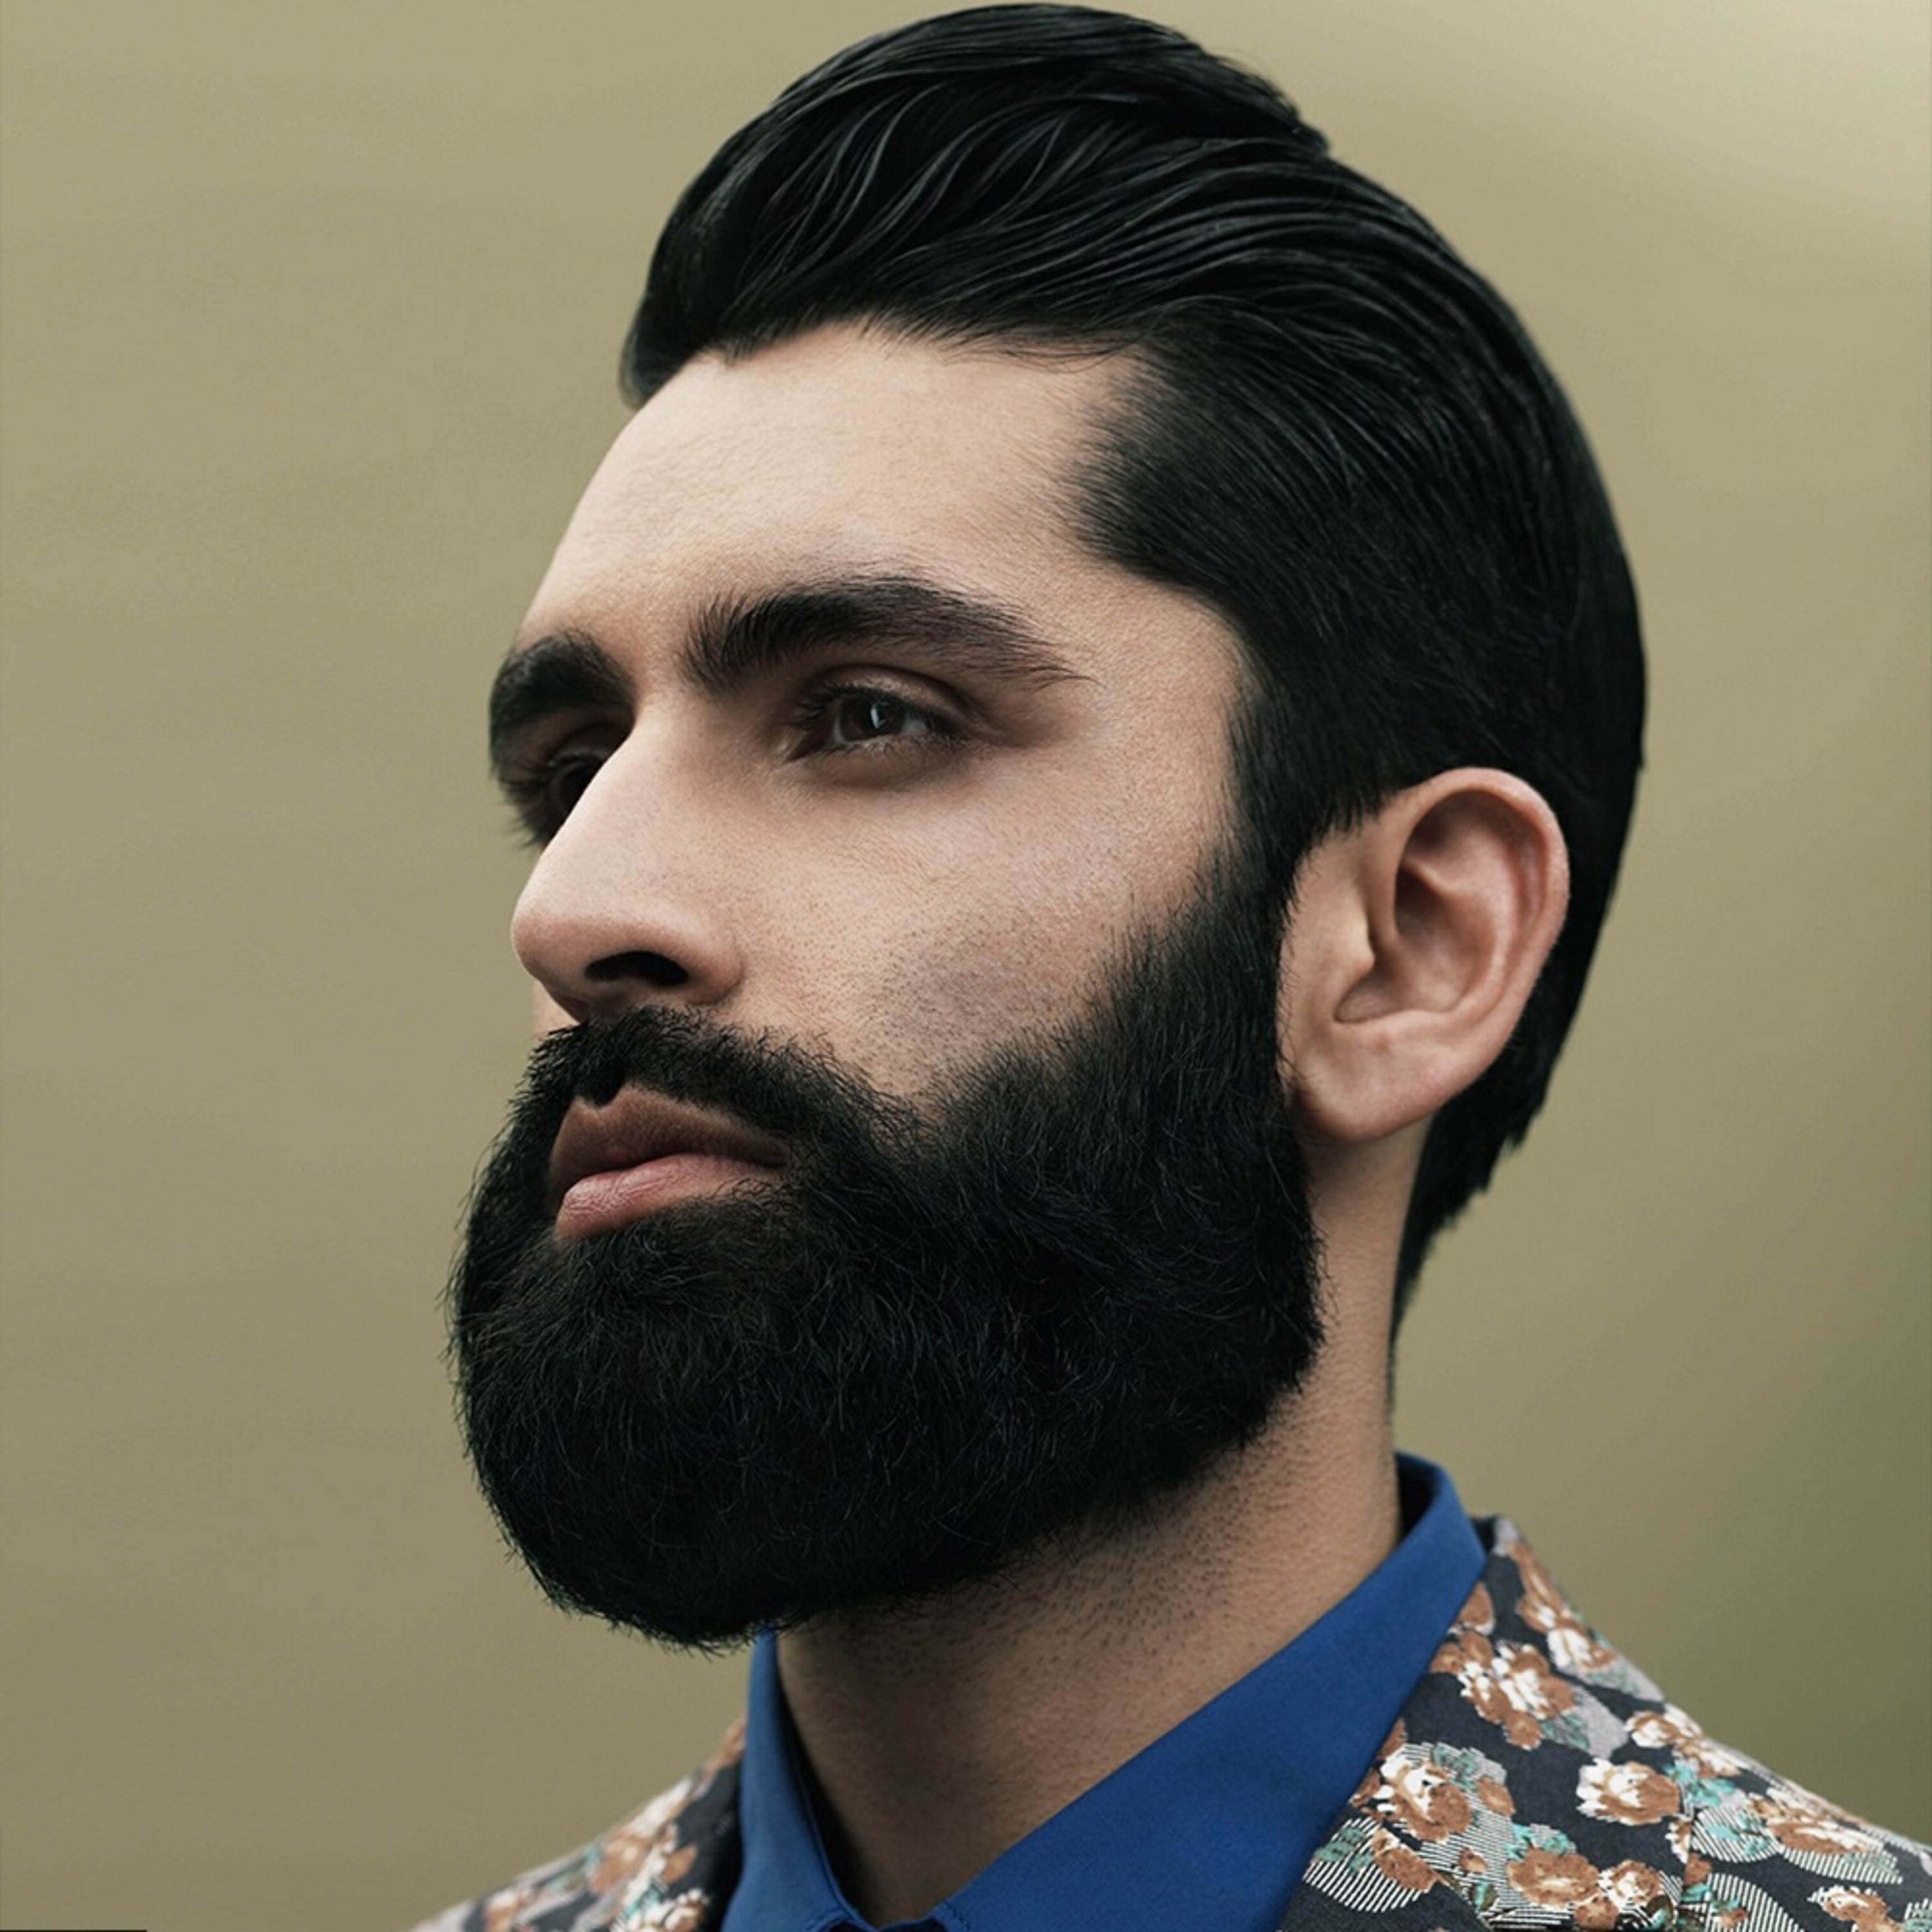 A full beard styled in a circle.